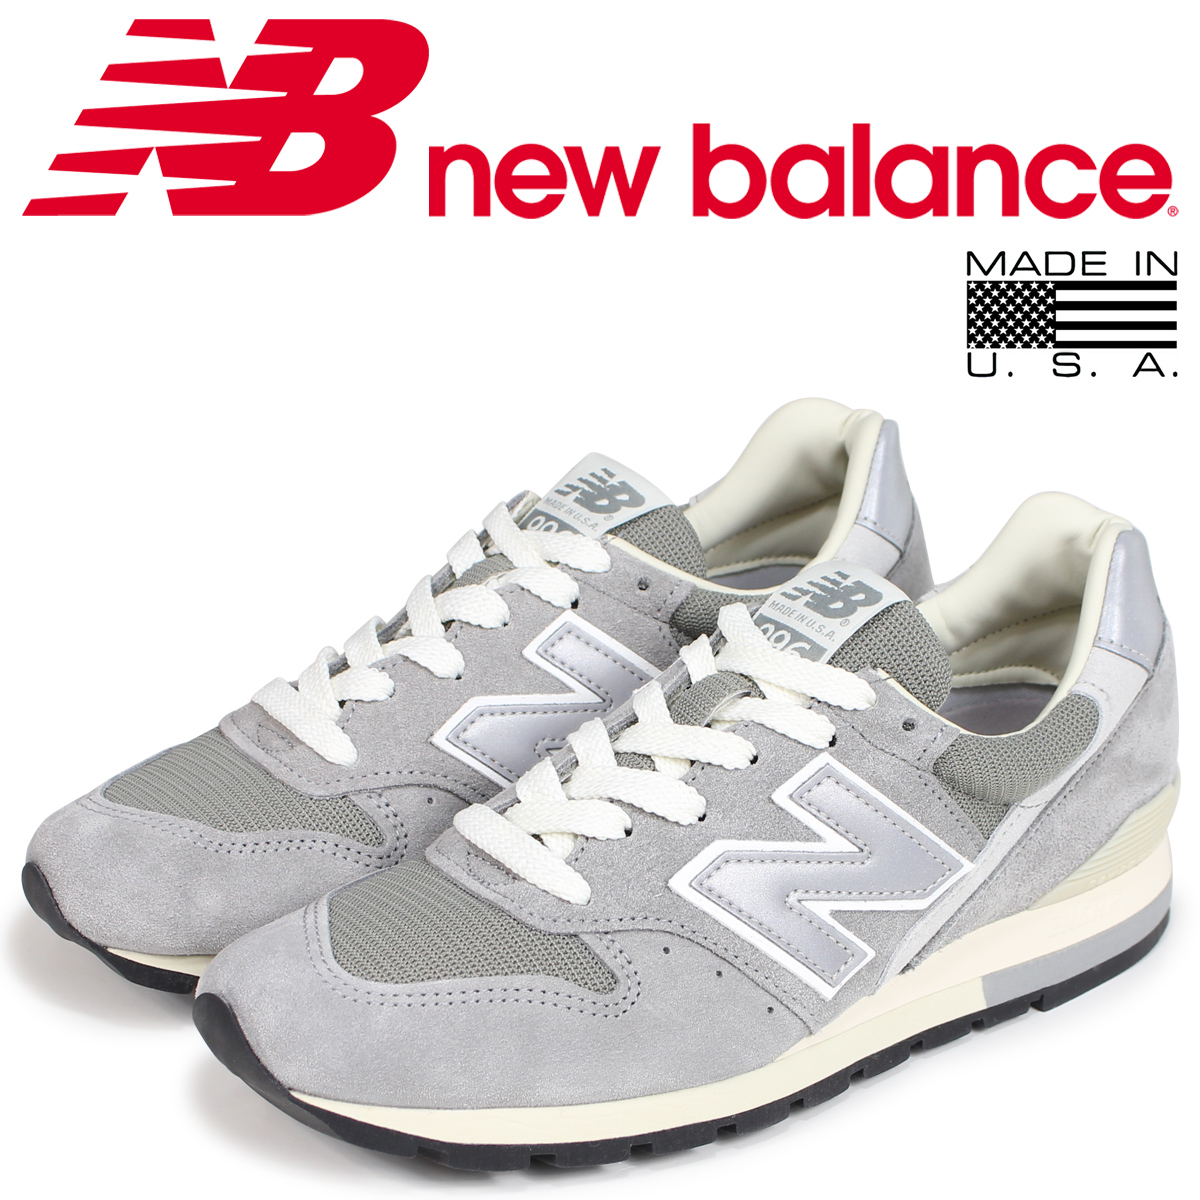 new balance 996 men's New Balance sneakers ML996DK D Wise MADE IN USA gray